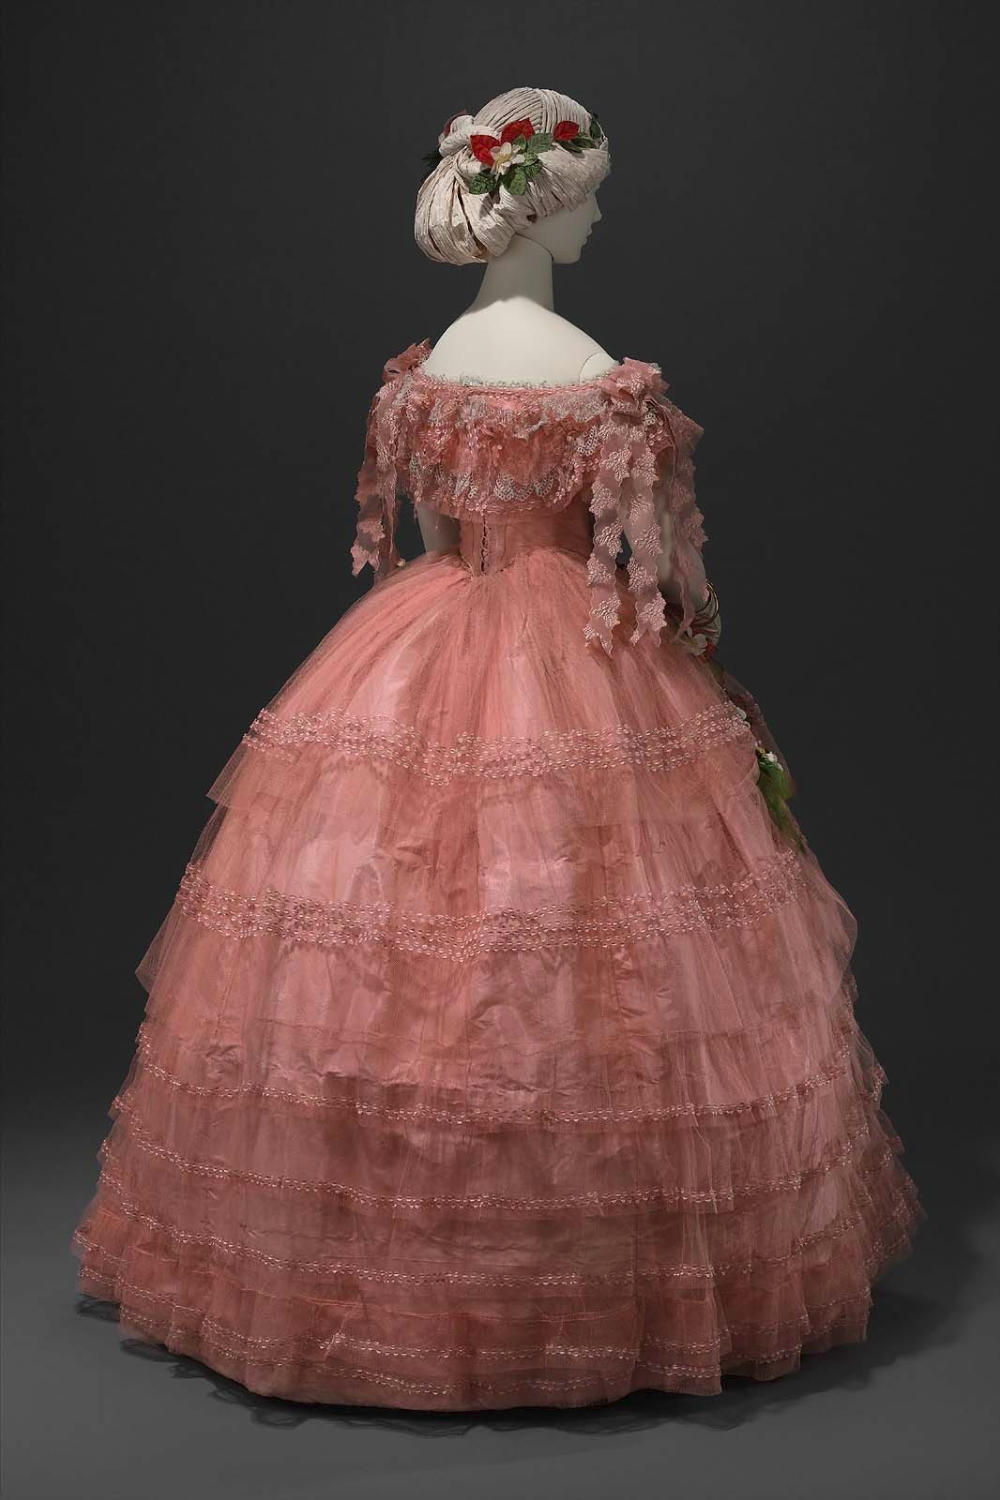 Wikivictorian On Twitter Ball Dresses Vintage Gowns Ball Gowns [ 1500 x 1000 Pixel ]